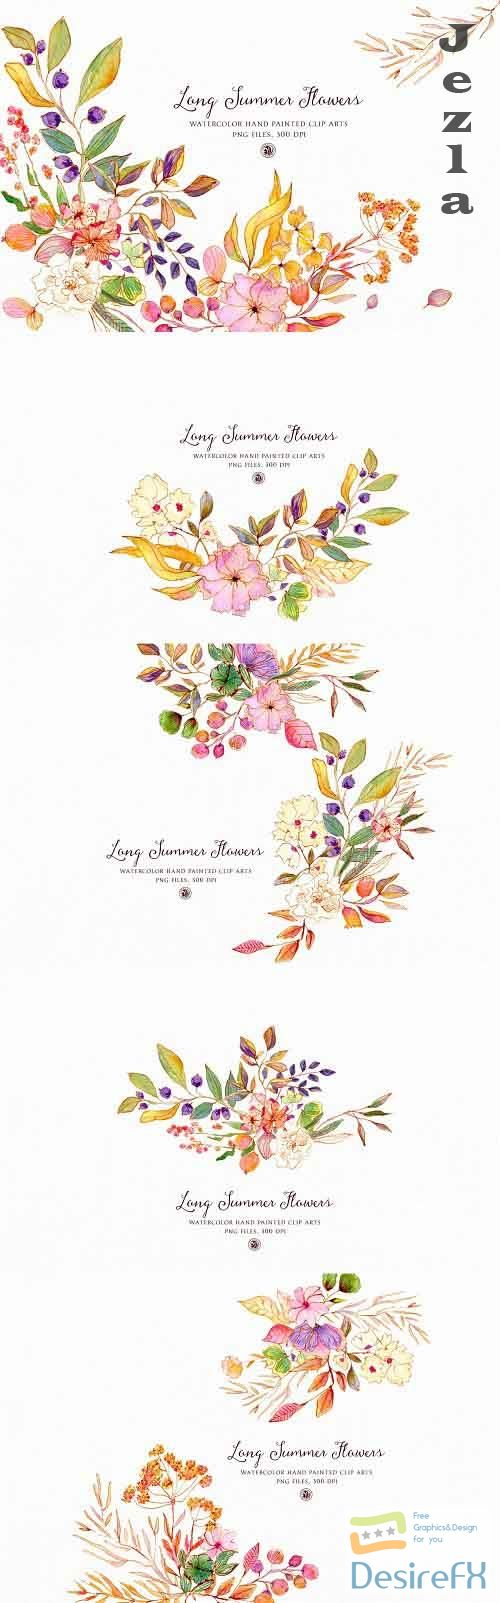 Long Summer Flowers - watercolor set - 5076064